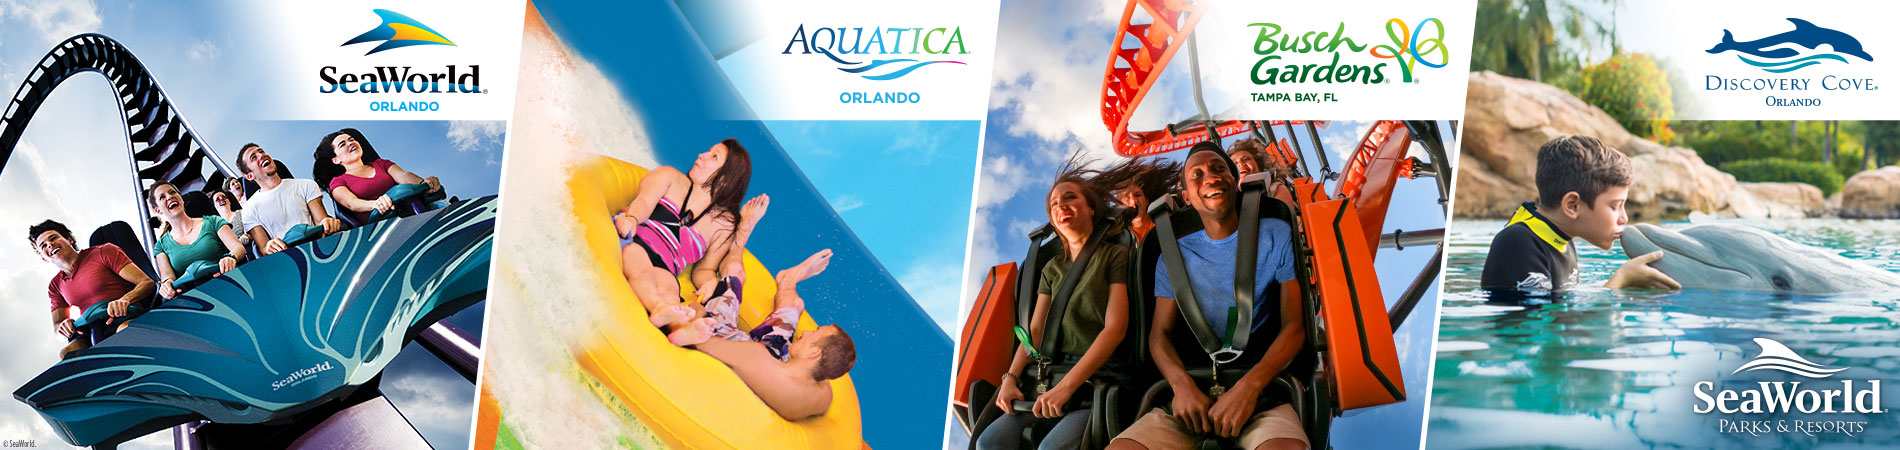 SeaWorld Parks and Resorts